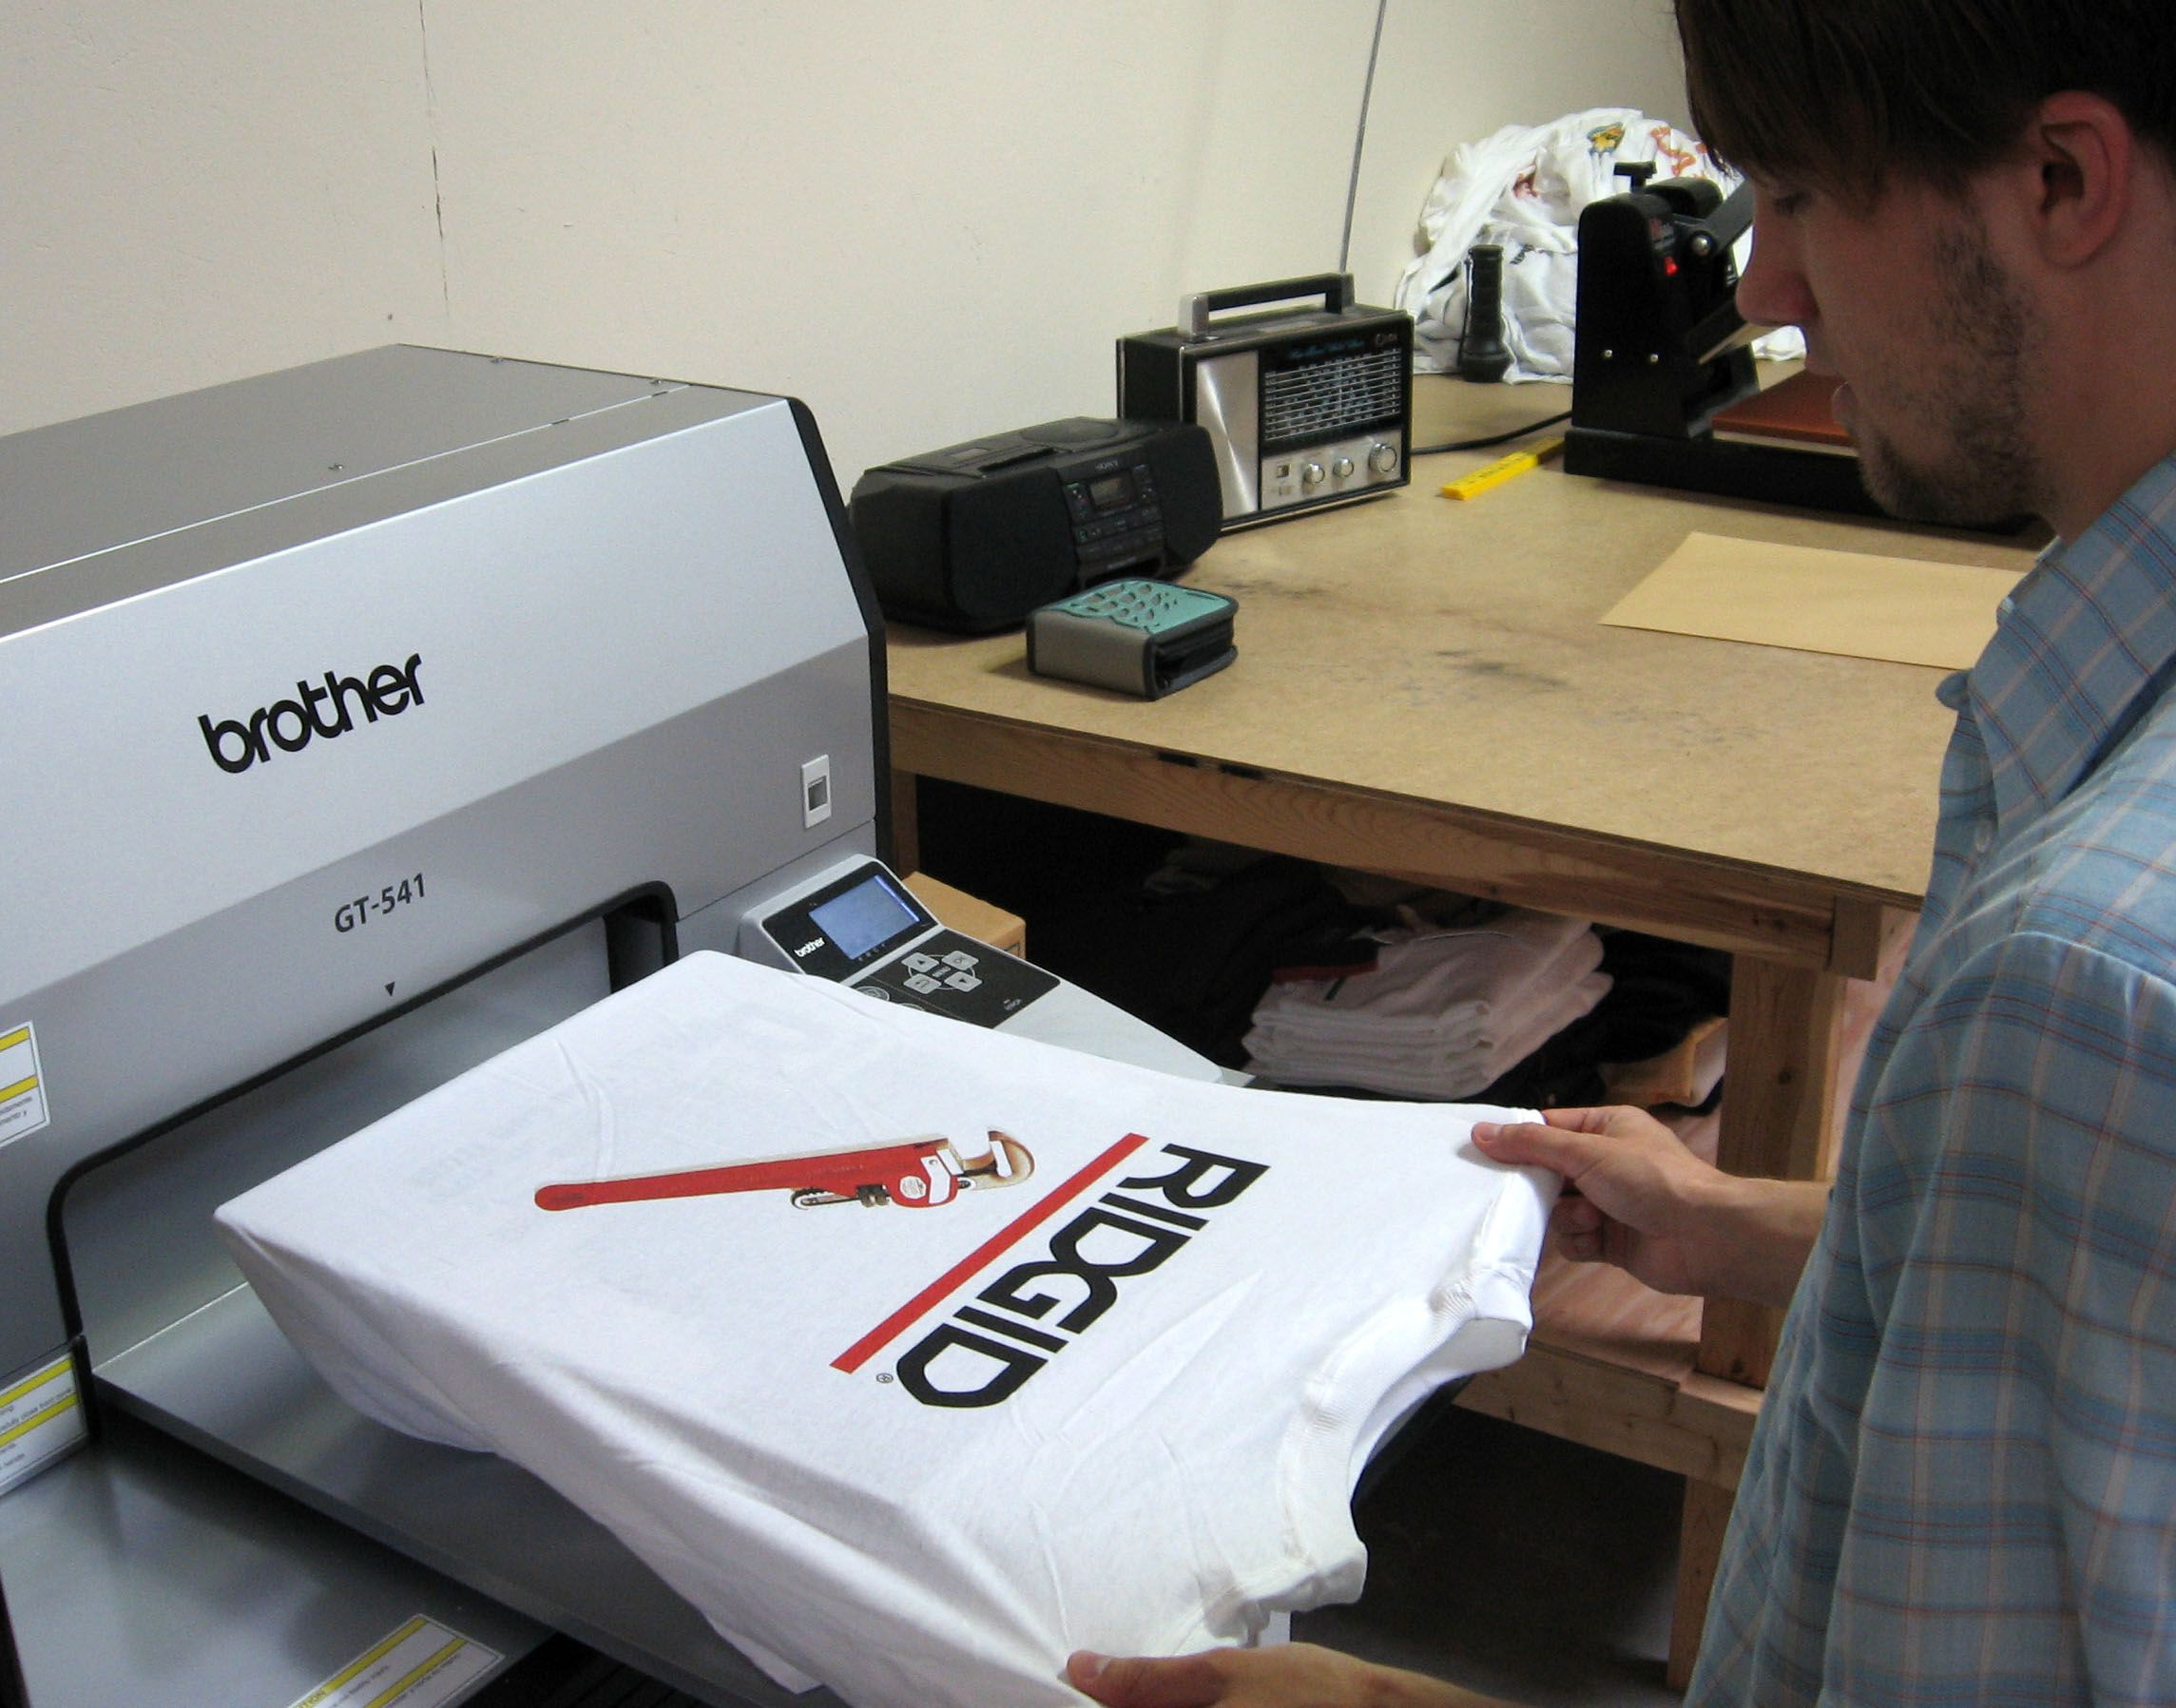 T-Shirt Printing - http://www.buytshirtsonline.co.uk/t-shirt ...